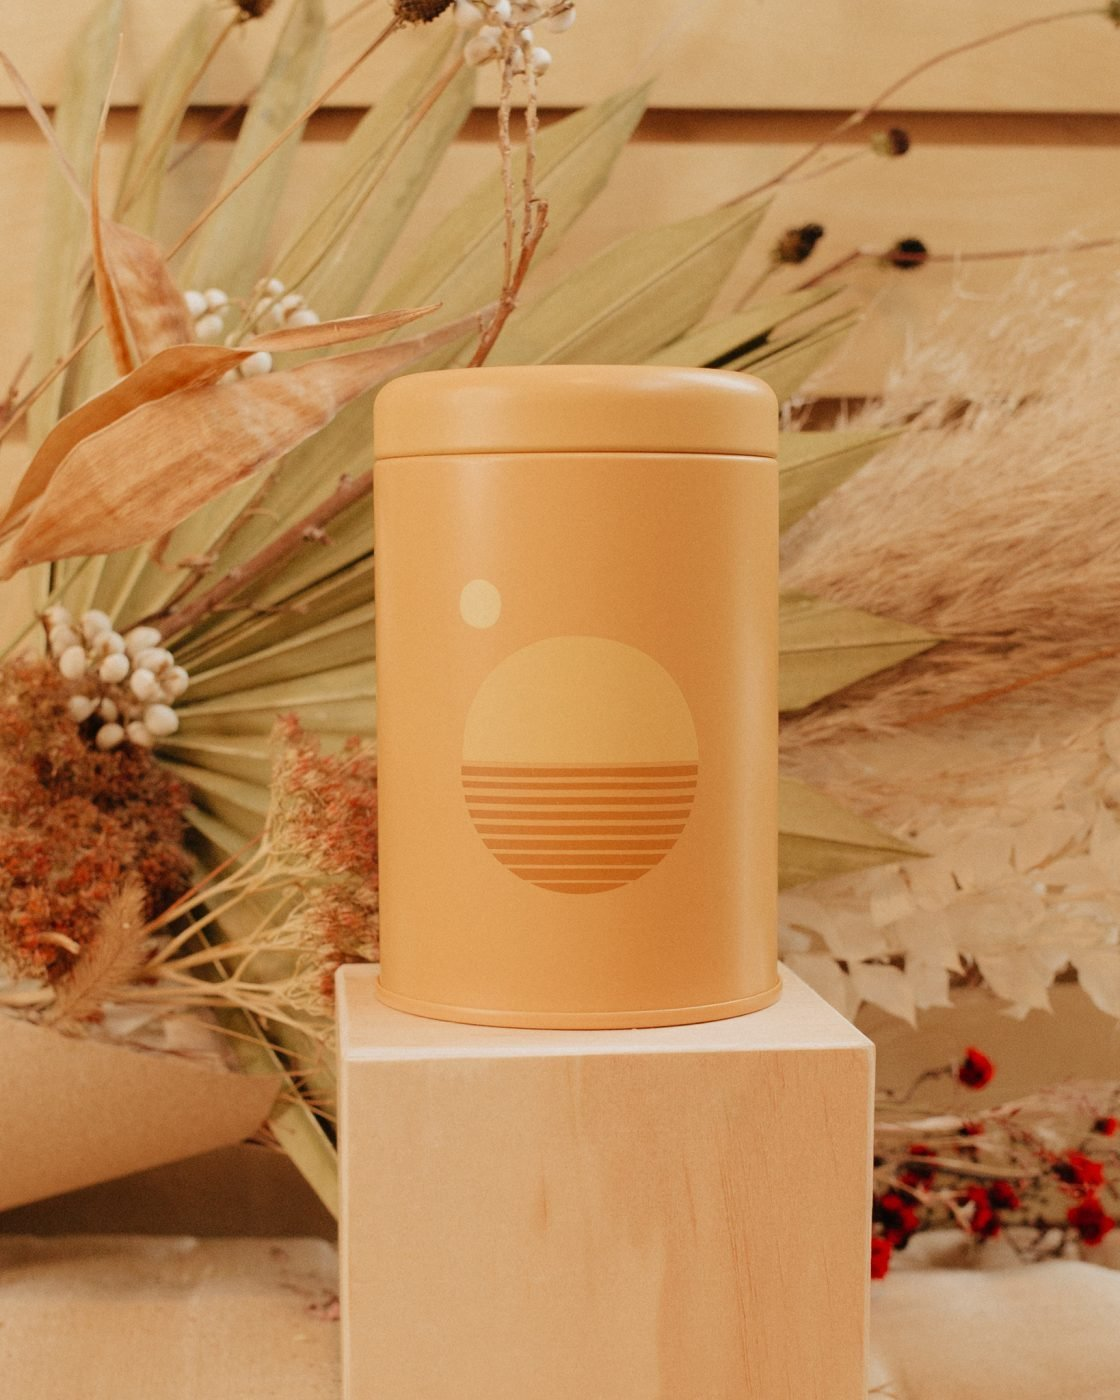 golden hour sunset soy candle from PF candle co